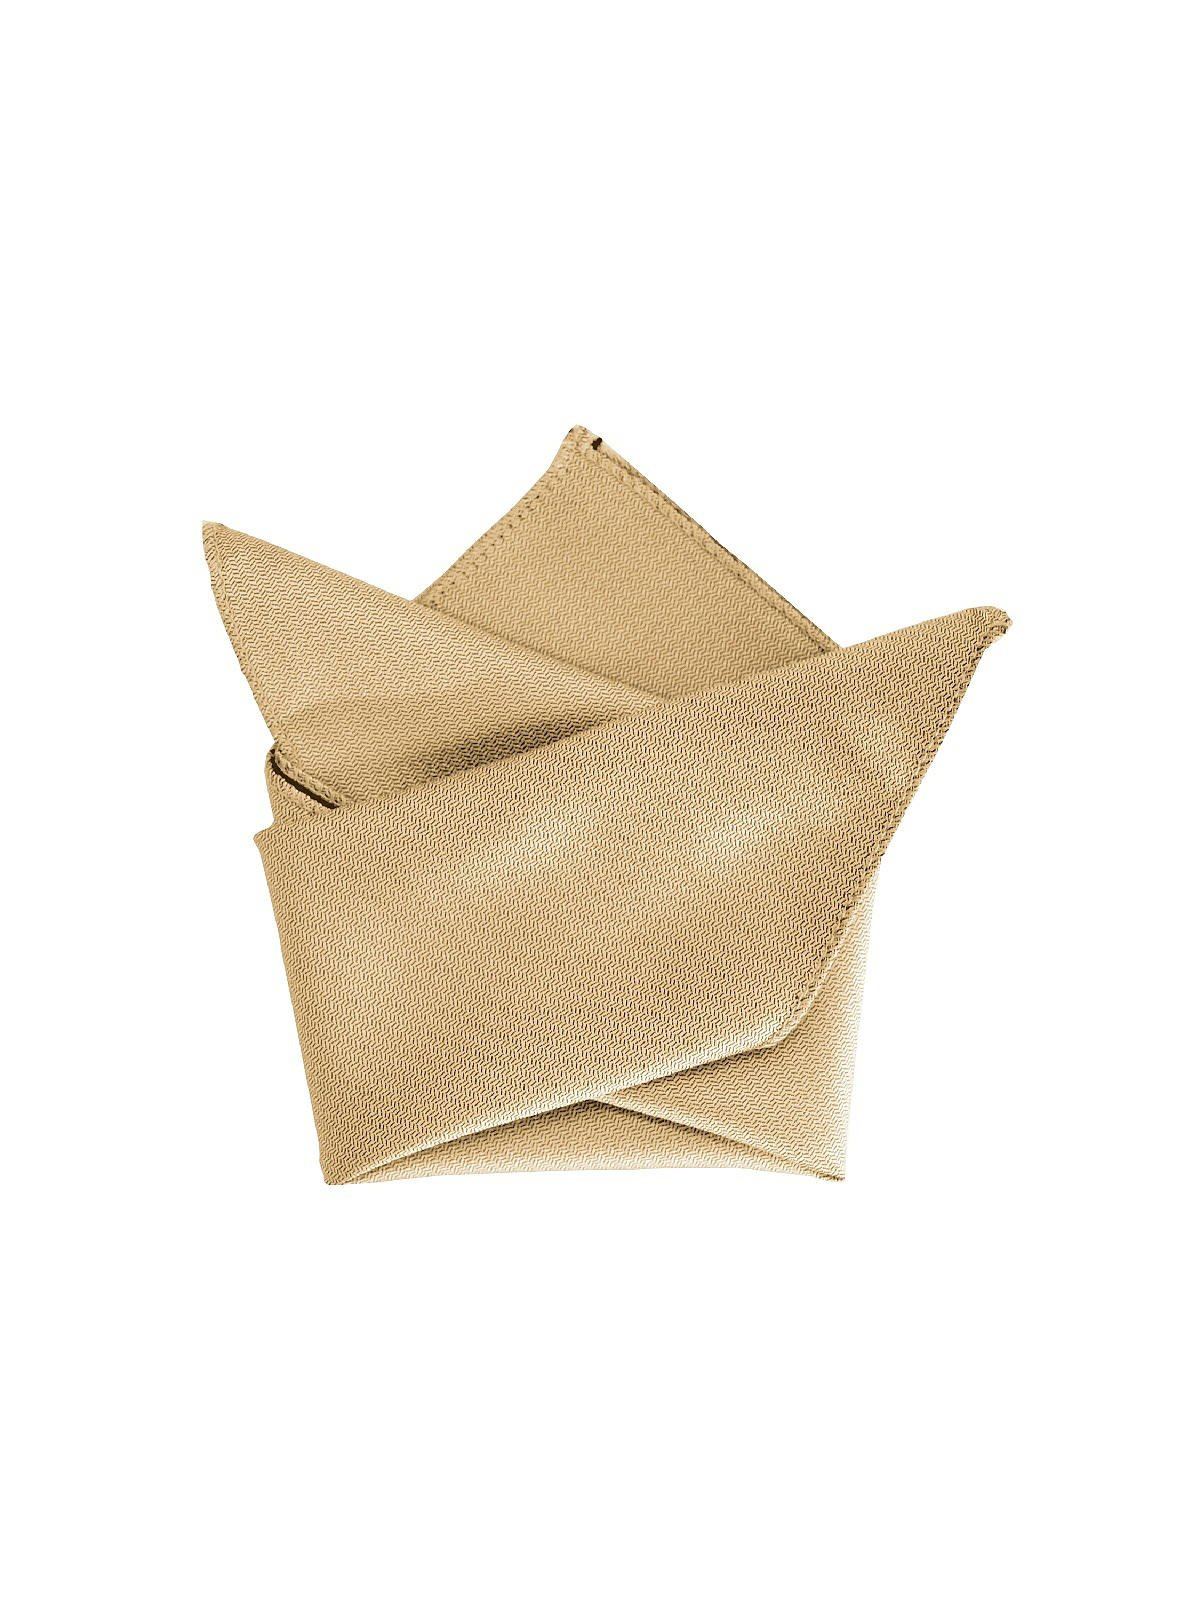 Men's Paragon Pocket Square Style YD504 by After Six - Venetian Gold